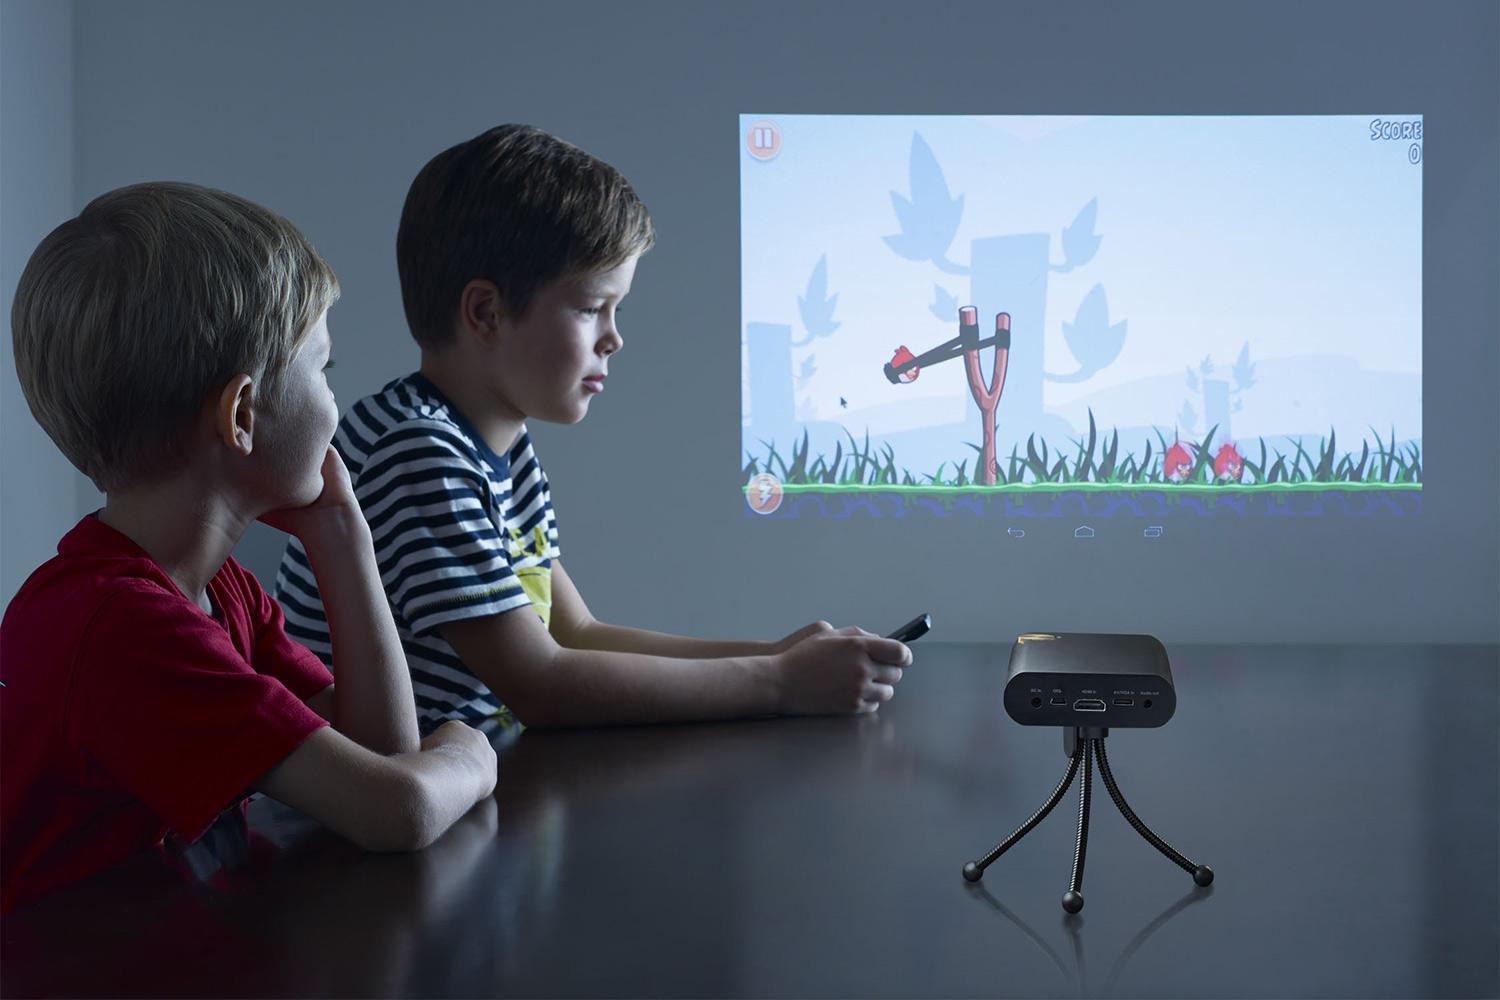 New Pocket Projector Lets You Turn Any Wall Into 80 Foot Android Touchscreen